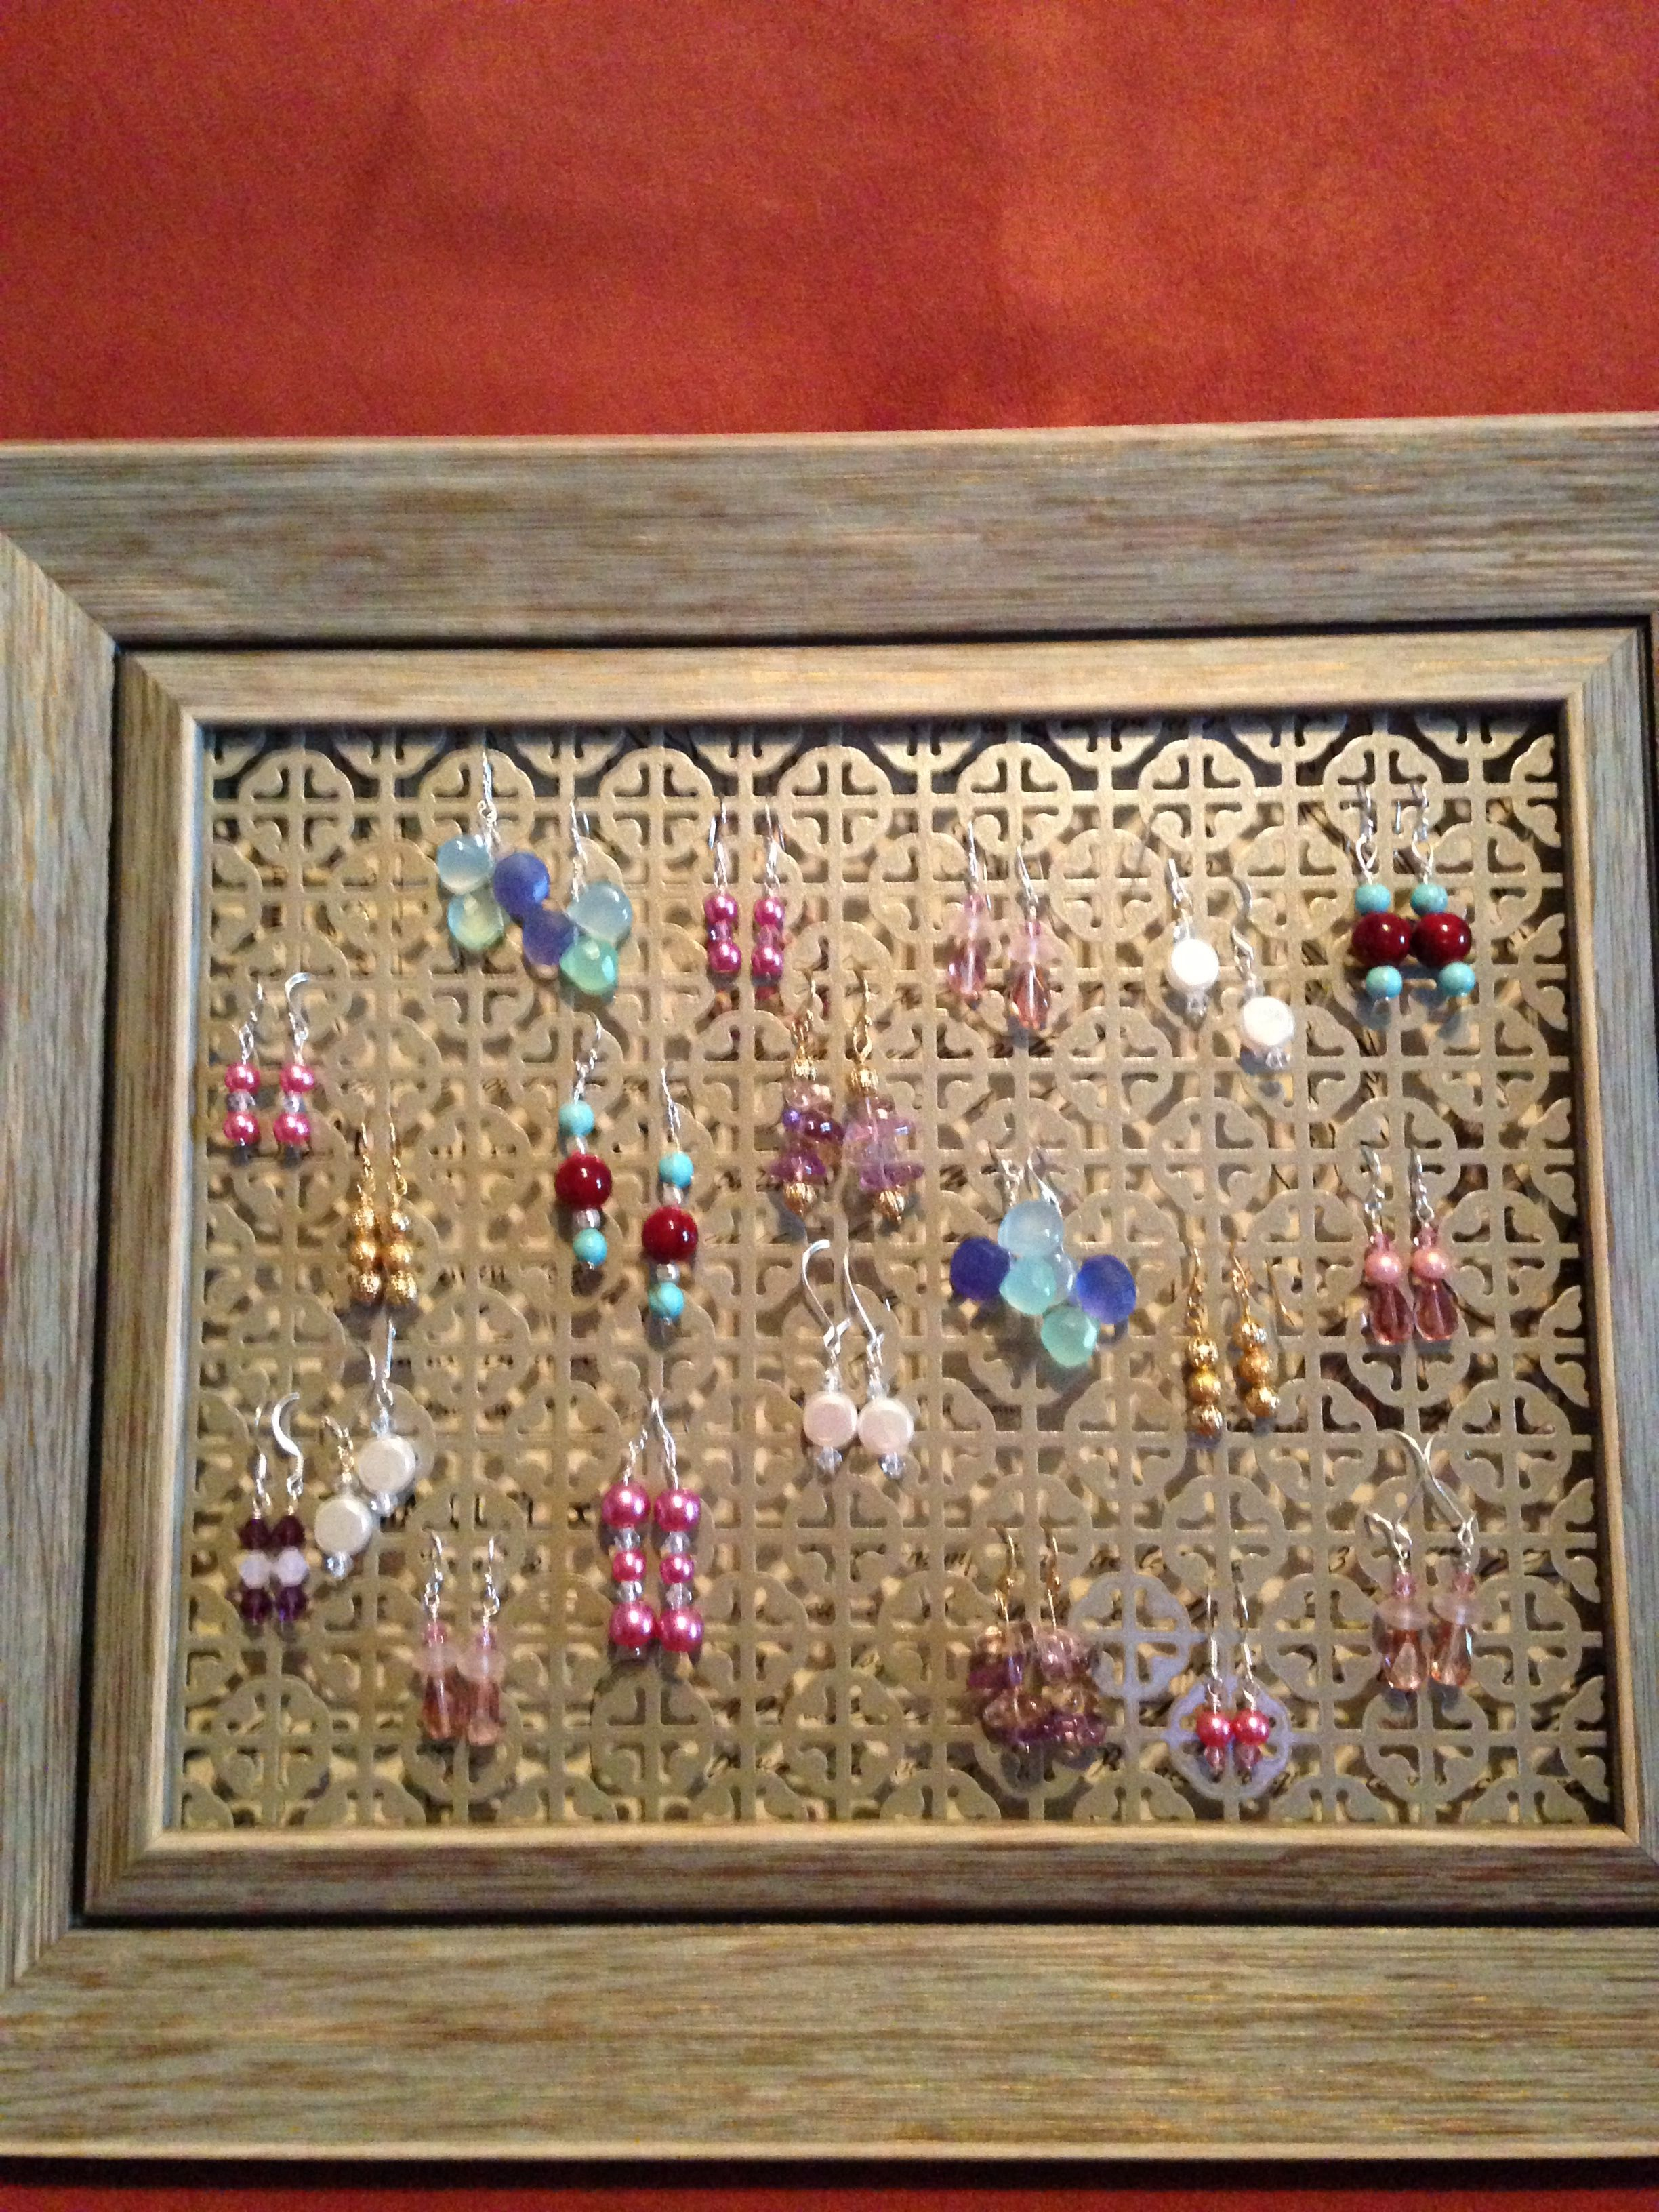 Earringsjewelry Organizer Frame From Home Goods Remove Glass